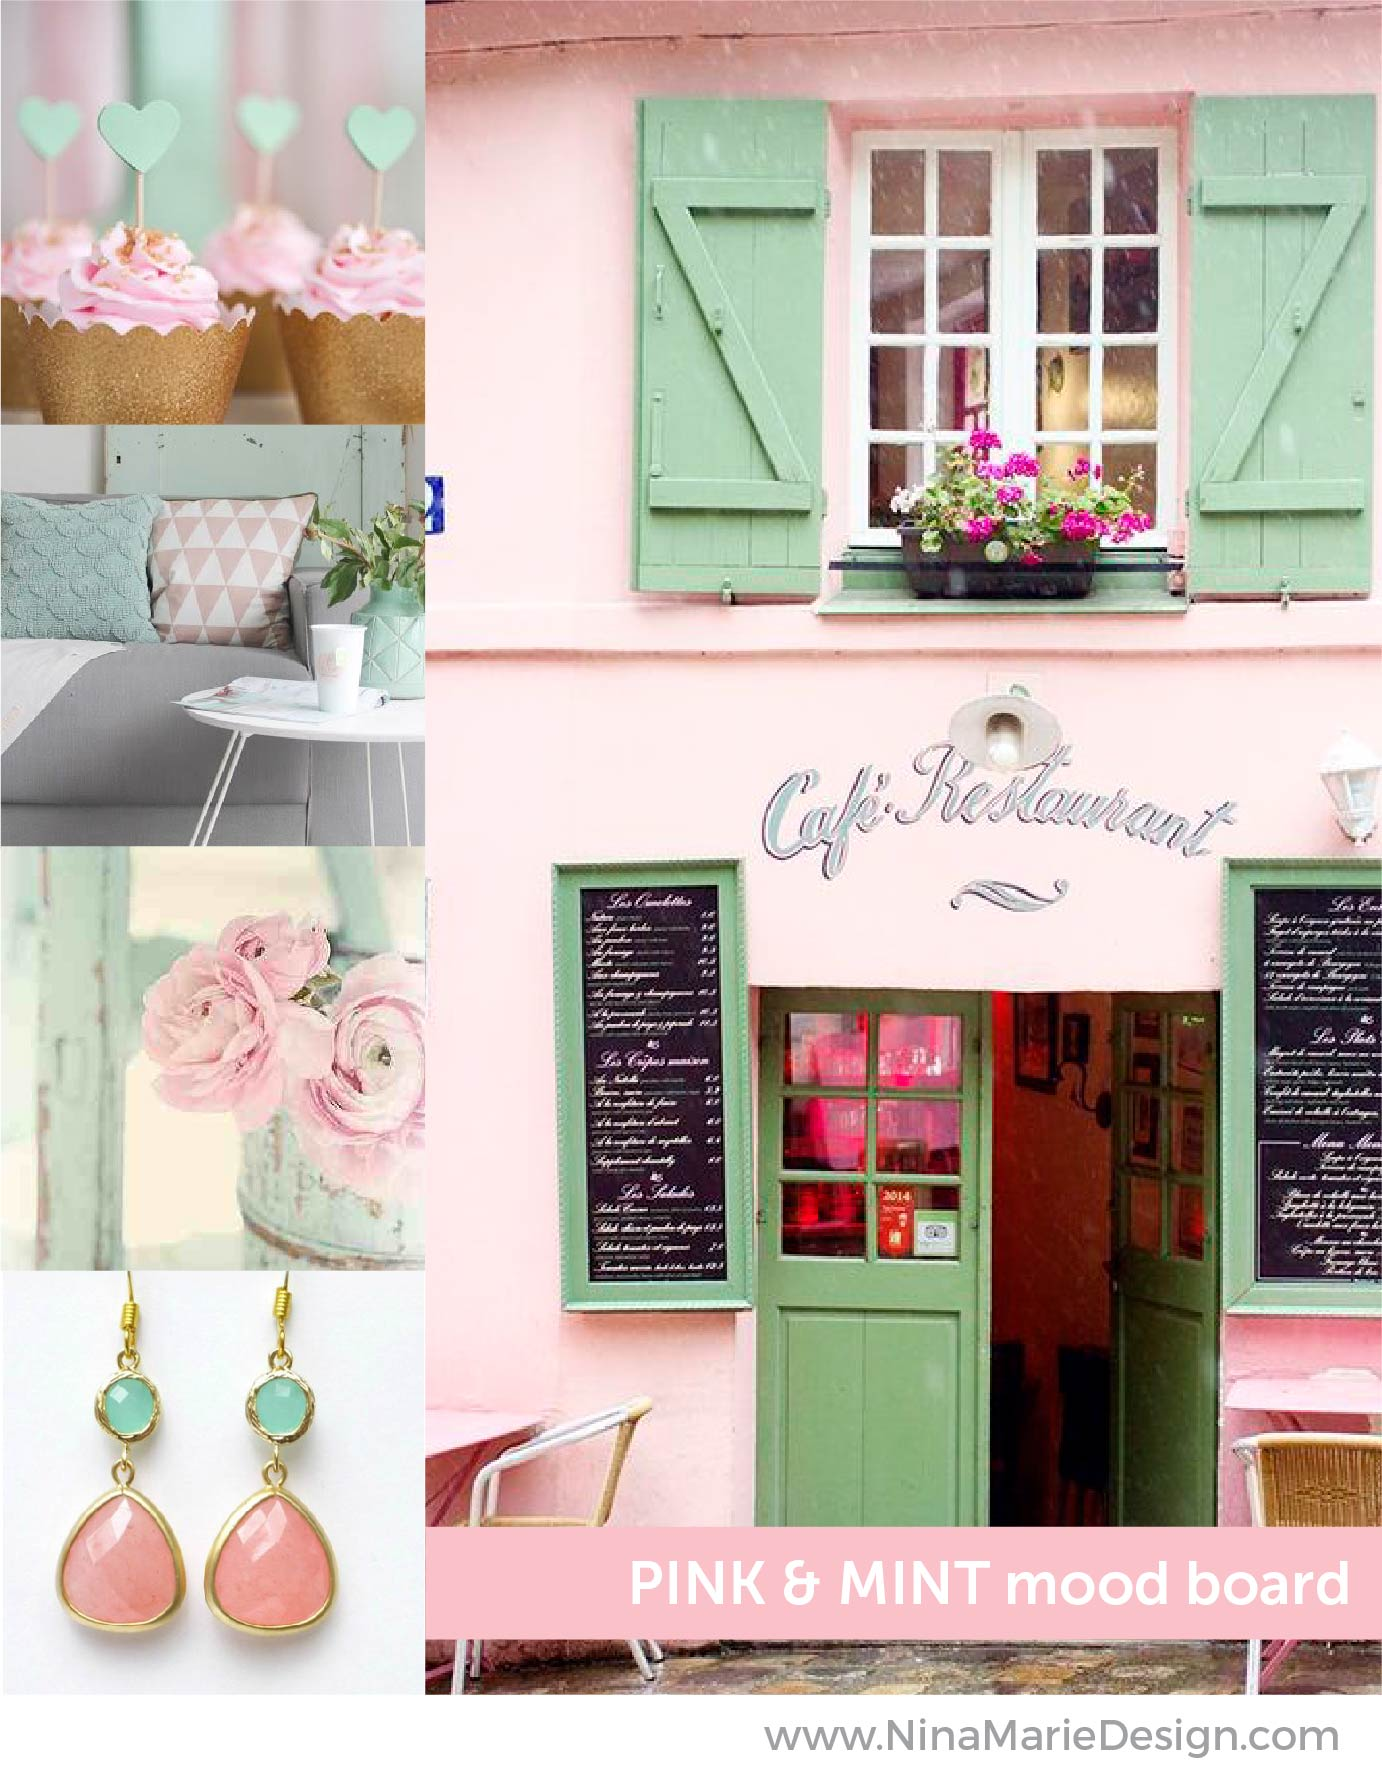 Pink and Mint Mood Board | Nina-Marie Design